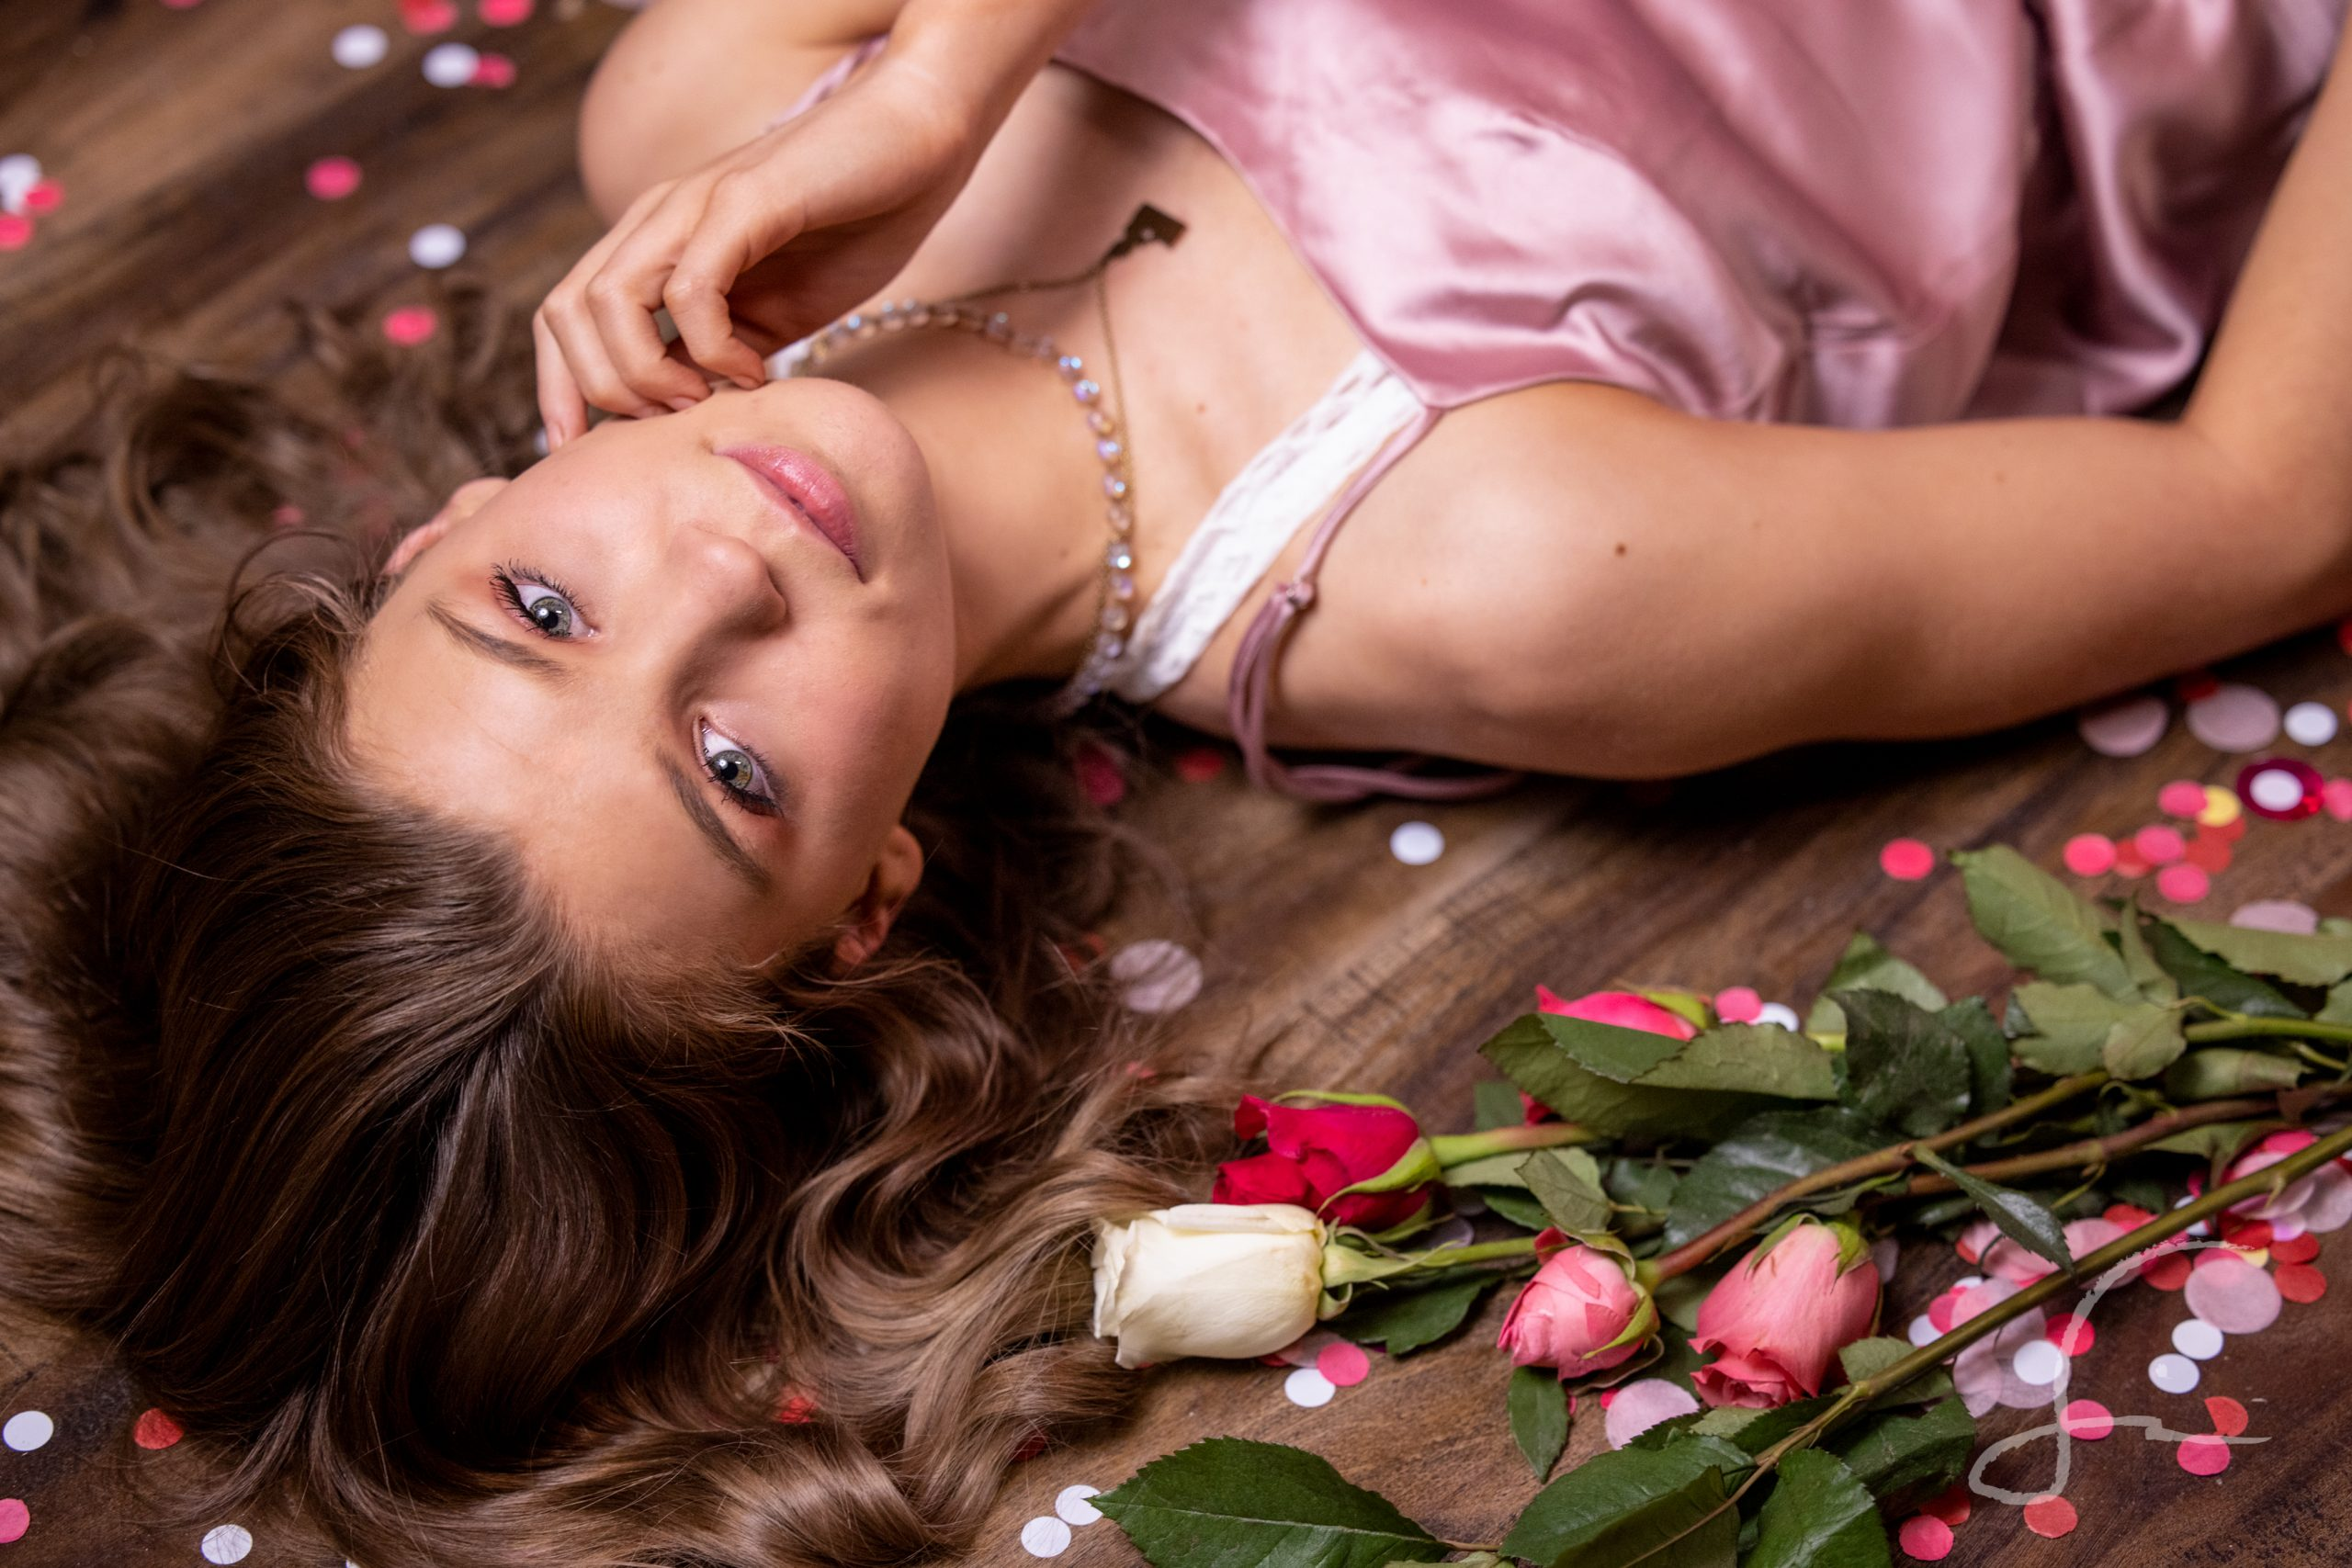 headshot of a young woman amongst roses and pink & white confetti